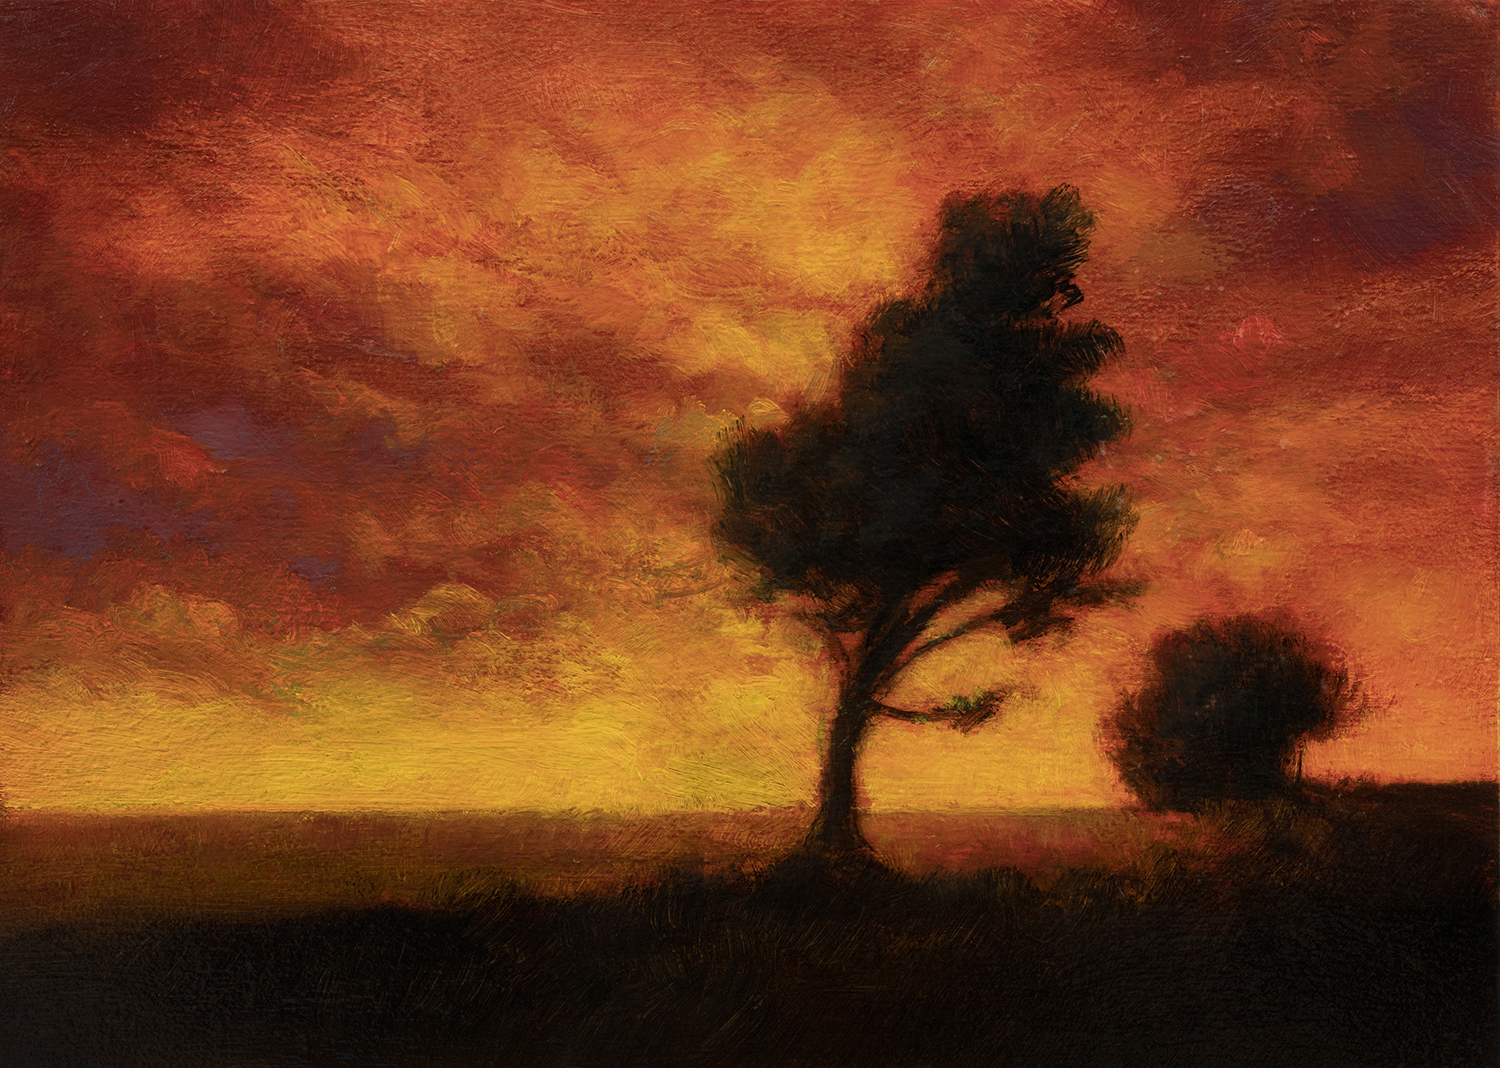 Evening Color by M Francis McCarthy - 5x7 Oil on Wood Panel